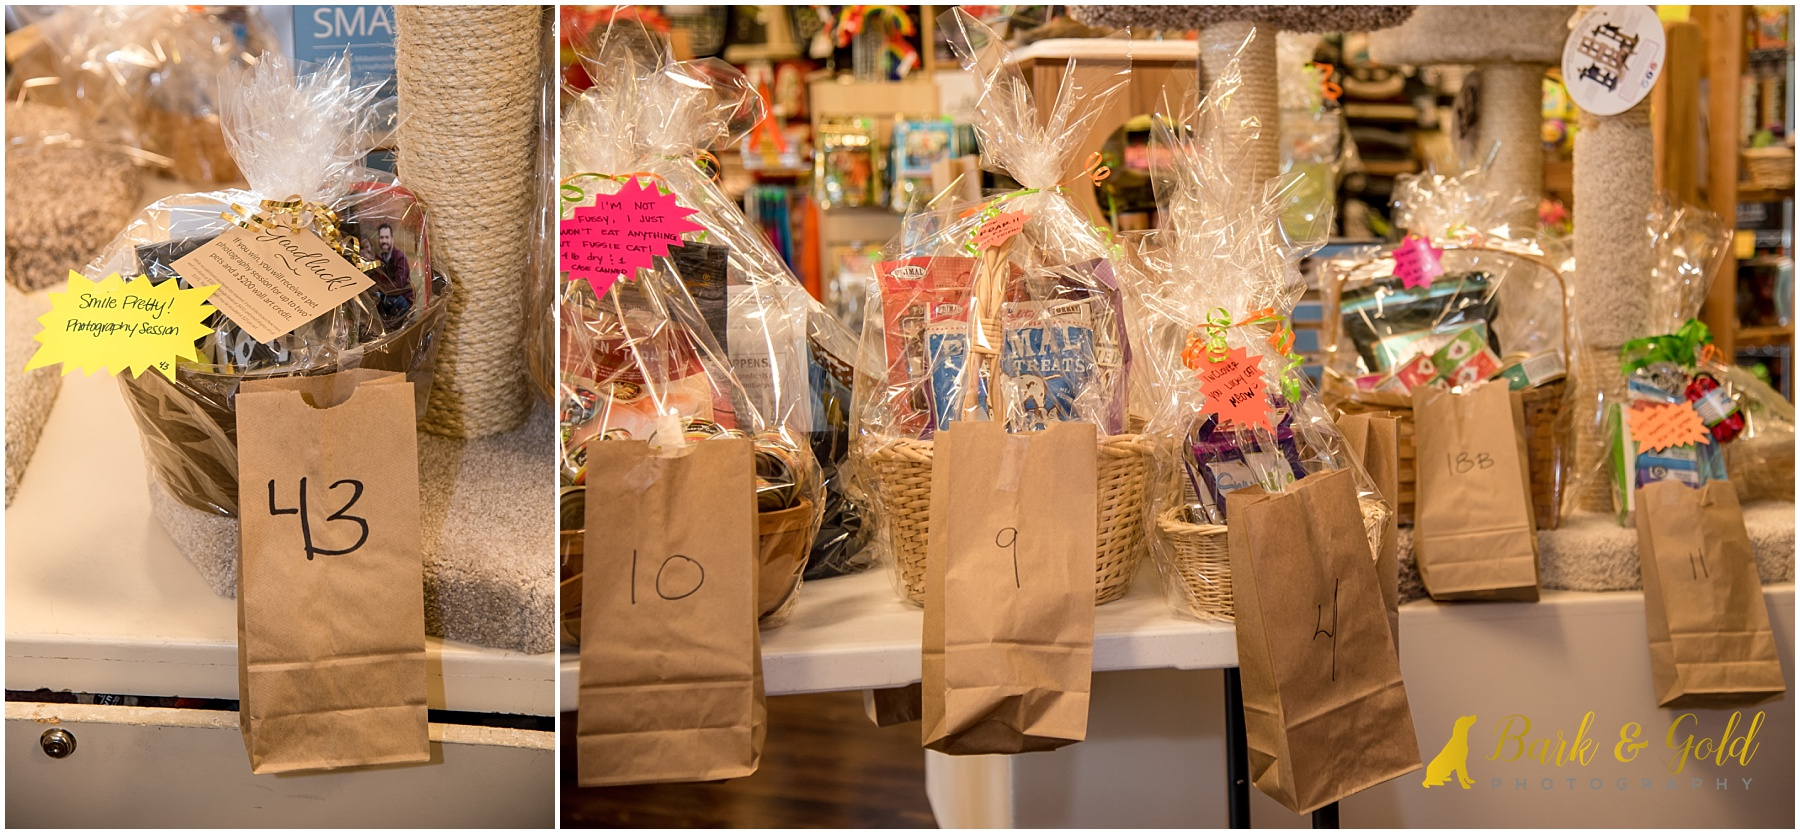 raffle baskets on display during Healthy Pet Day 2018